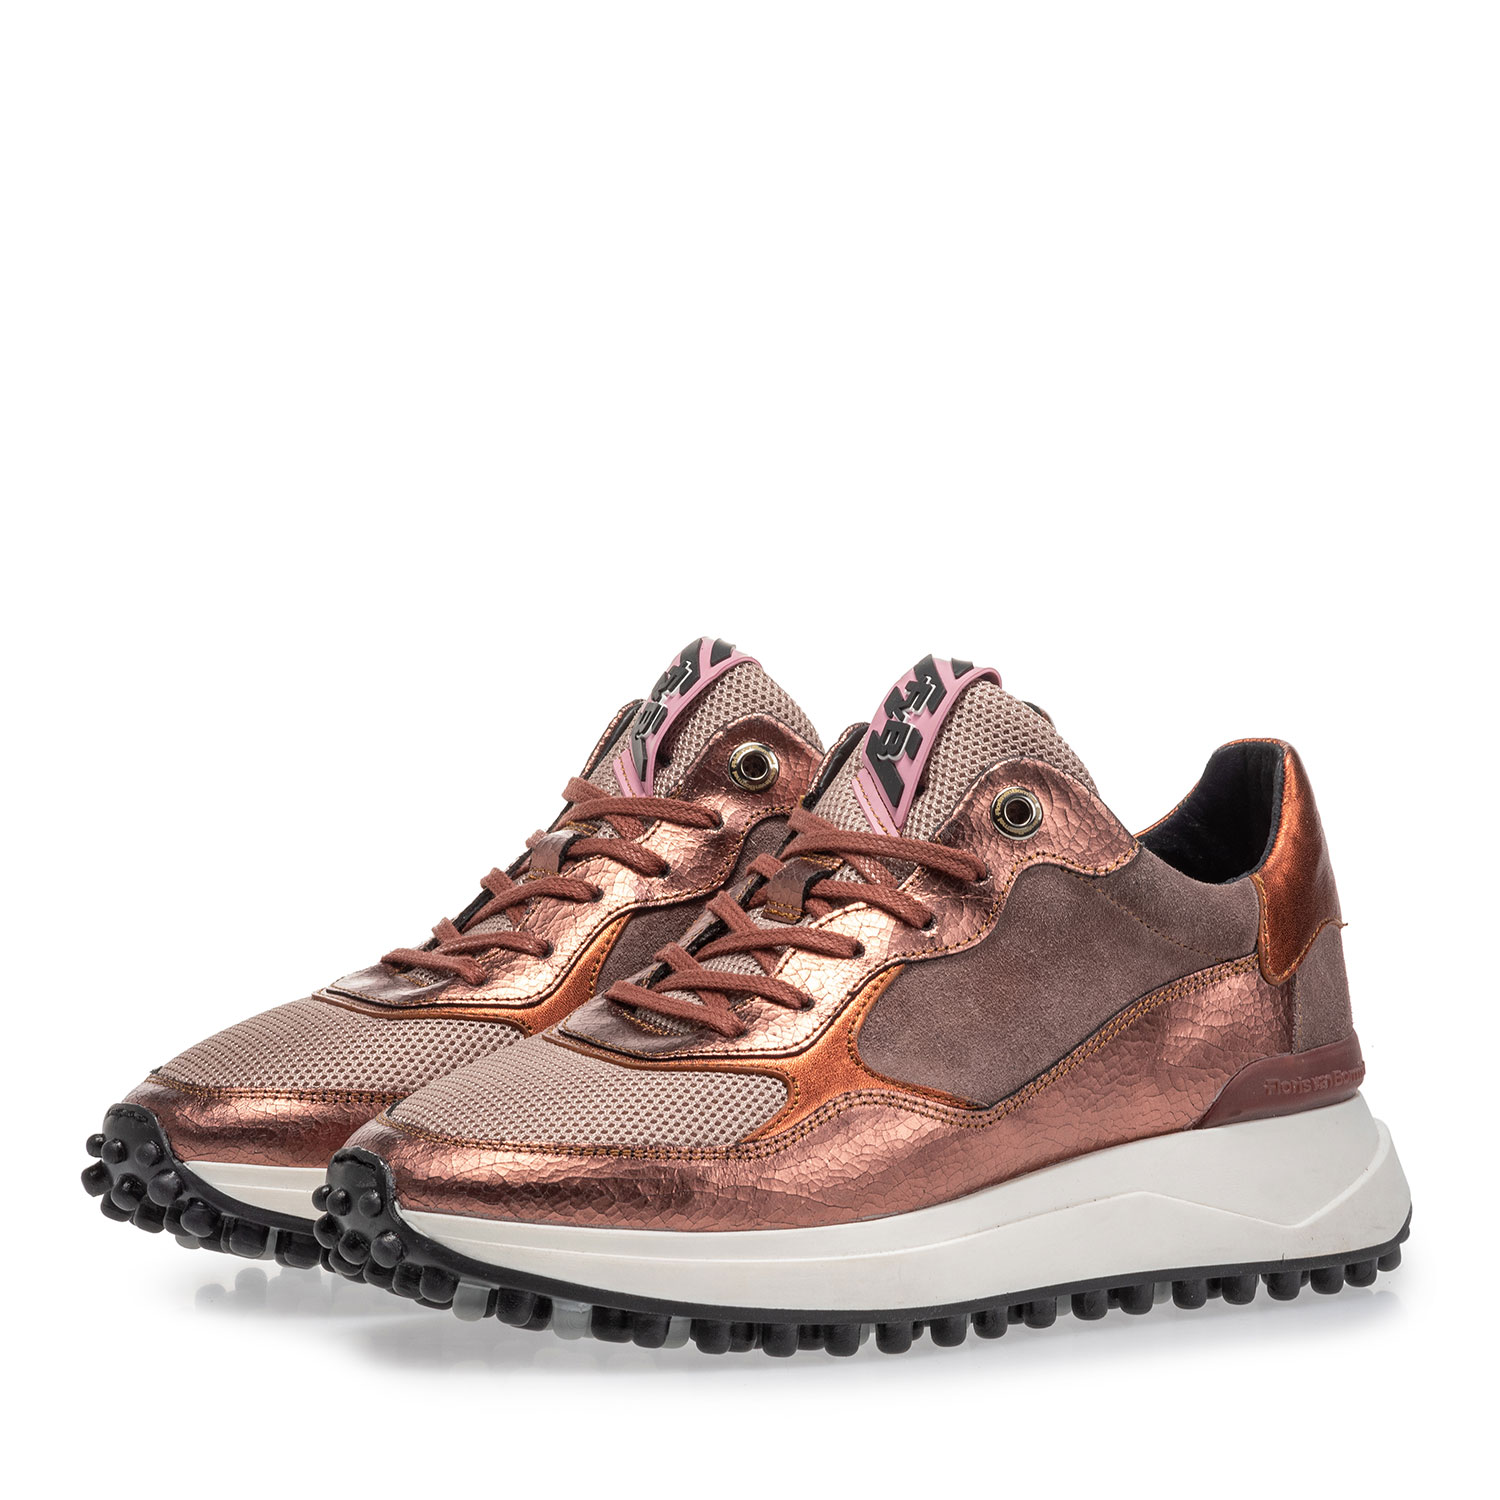 85307/12 - Noppi sneaker pink leather